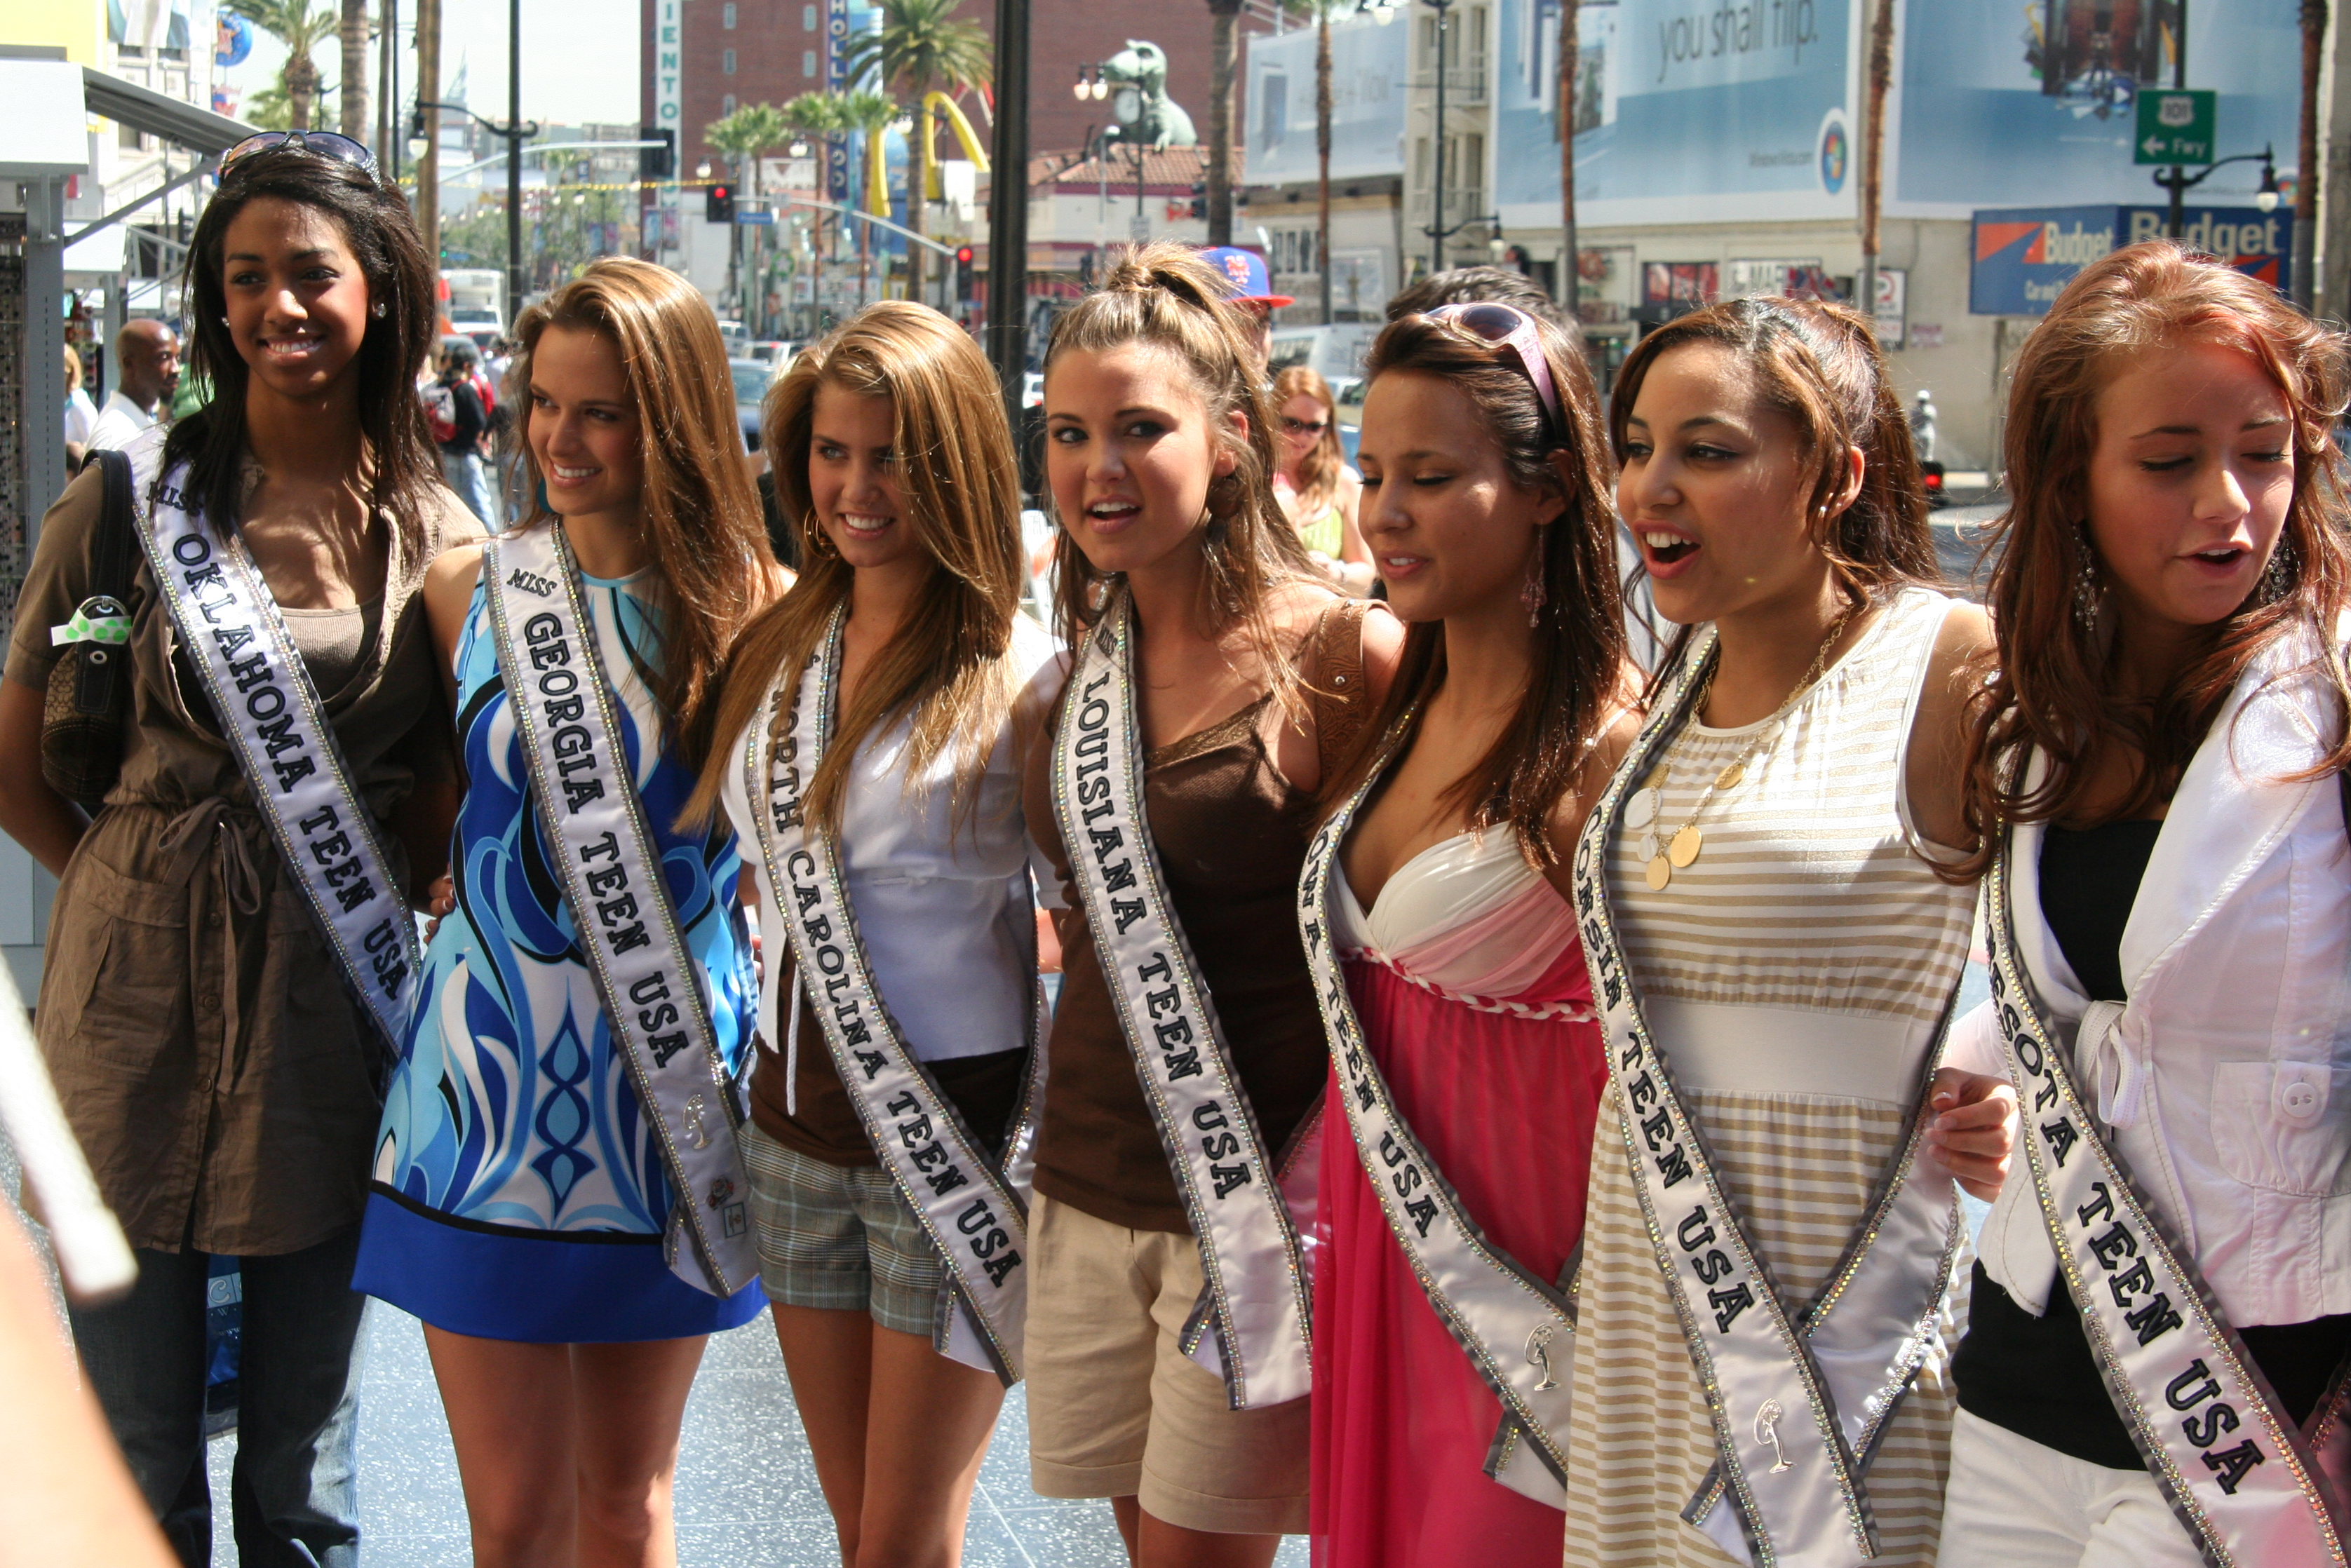 Miss teen usa 2007 photo shoot